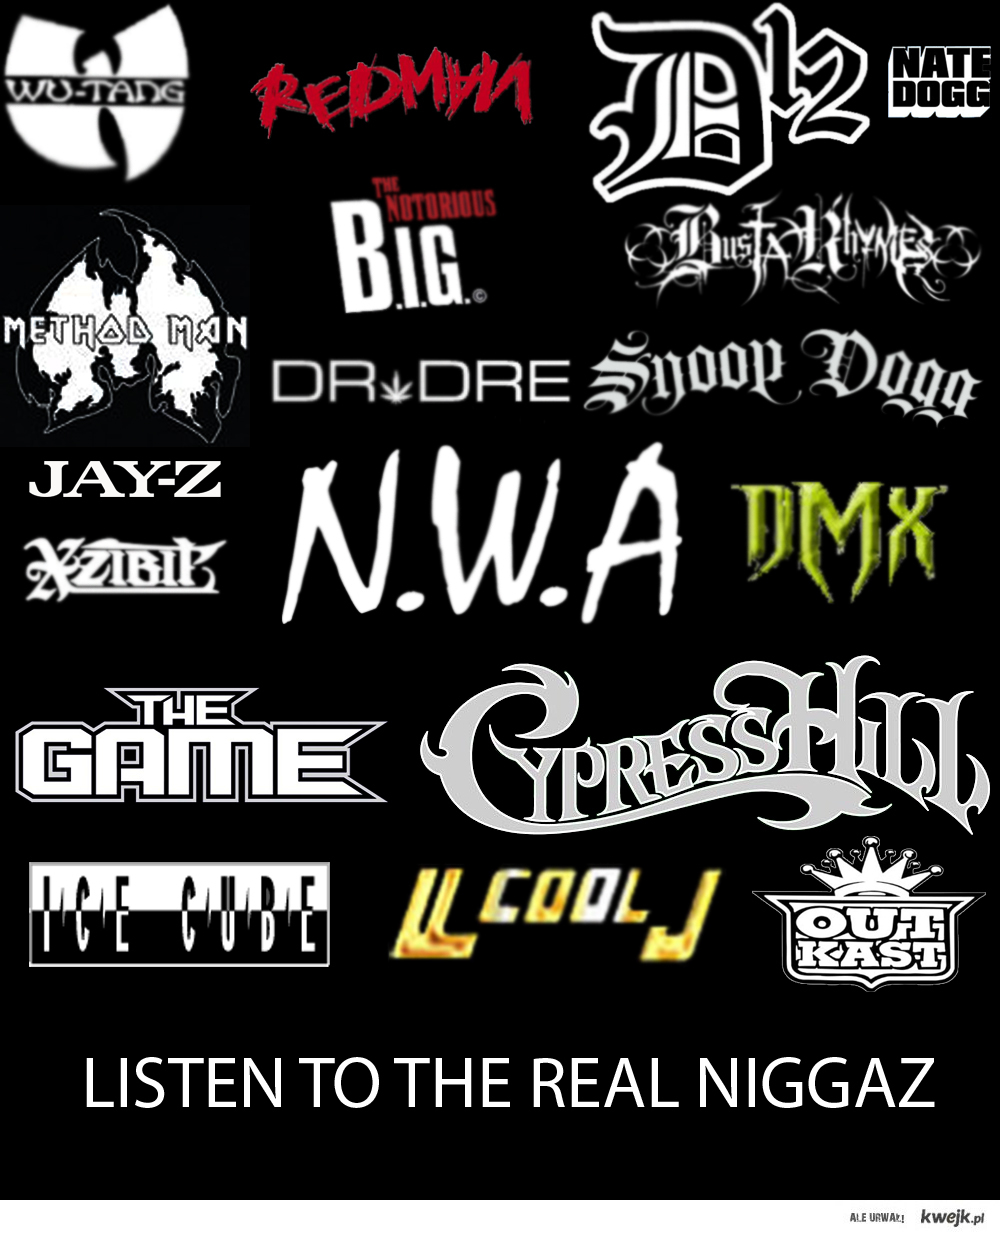 Listen To The Real Niggaz